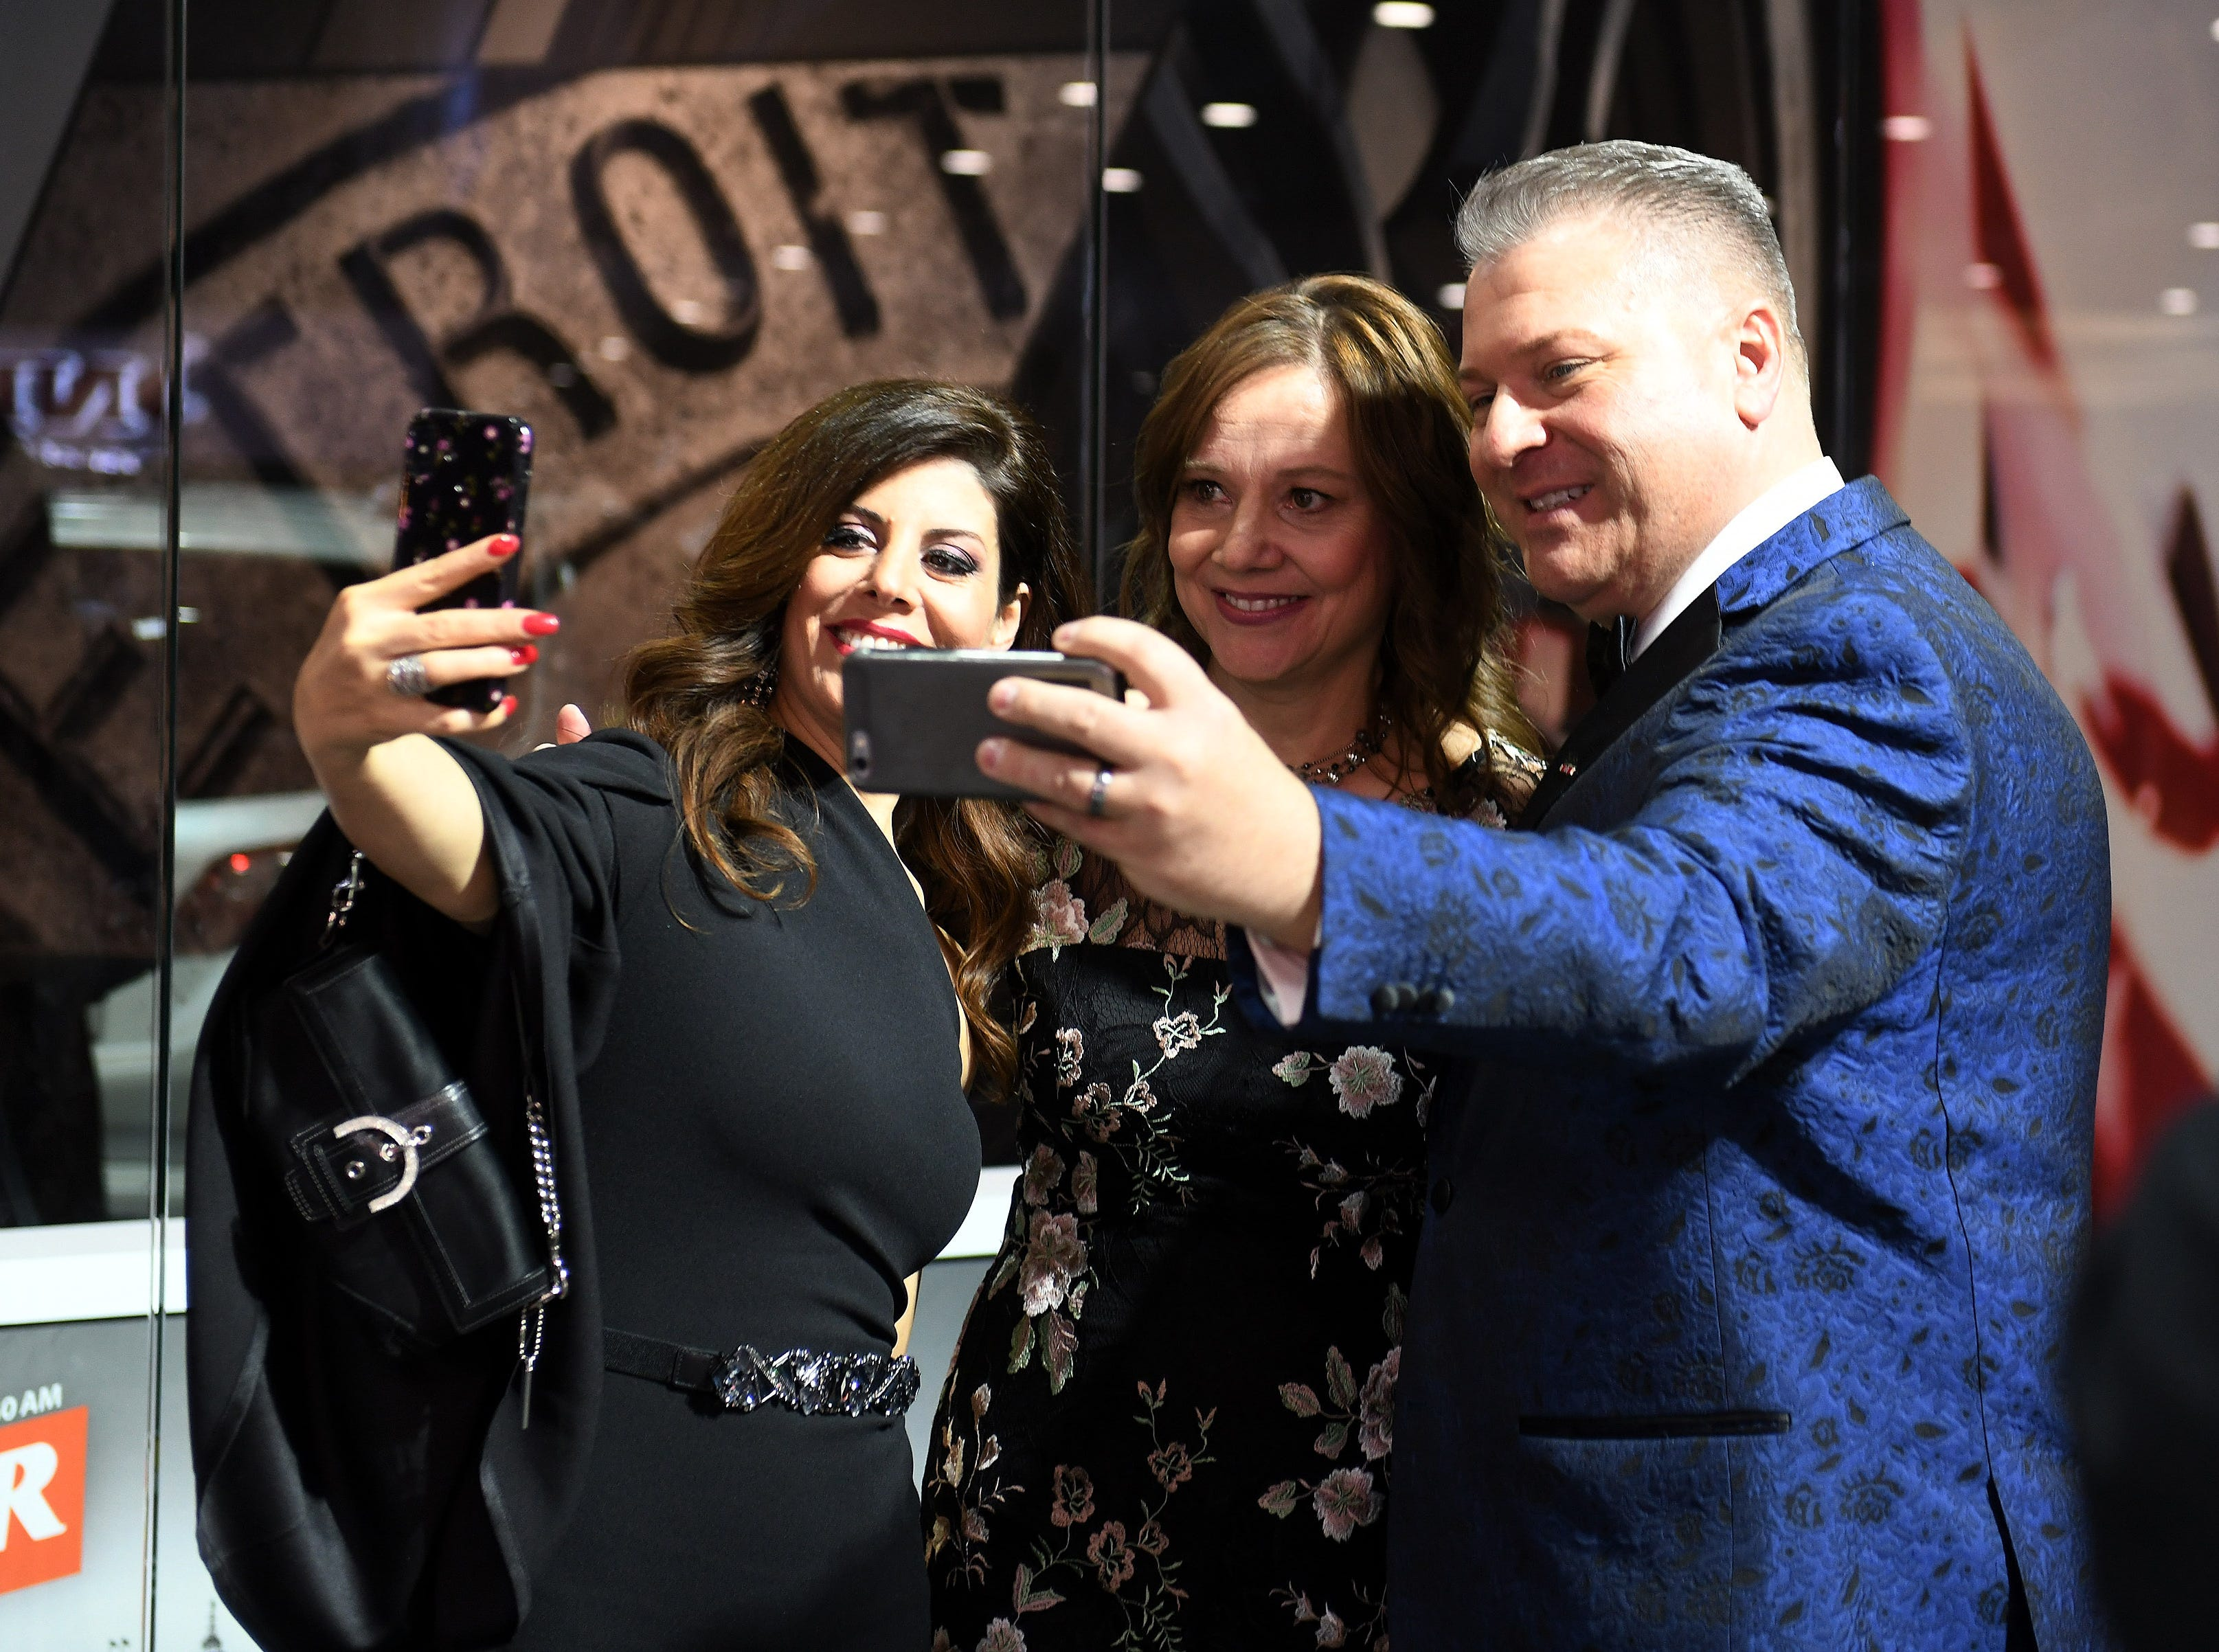 Rocky Raczkowski, right, and his wife, Amalia Raczkowski, left, both takes selfies with GM Chairwoman and CEO Mary Barra at the Charity Preview.